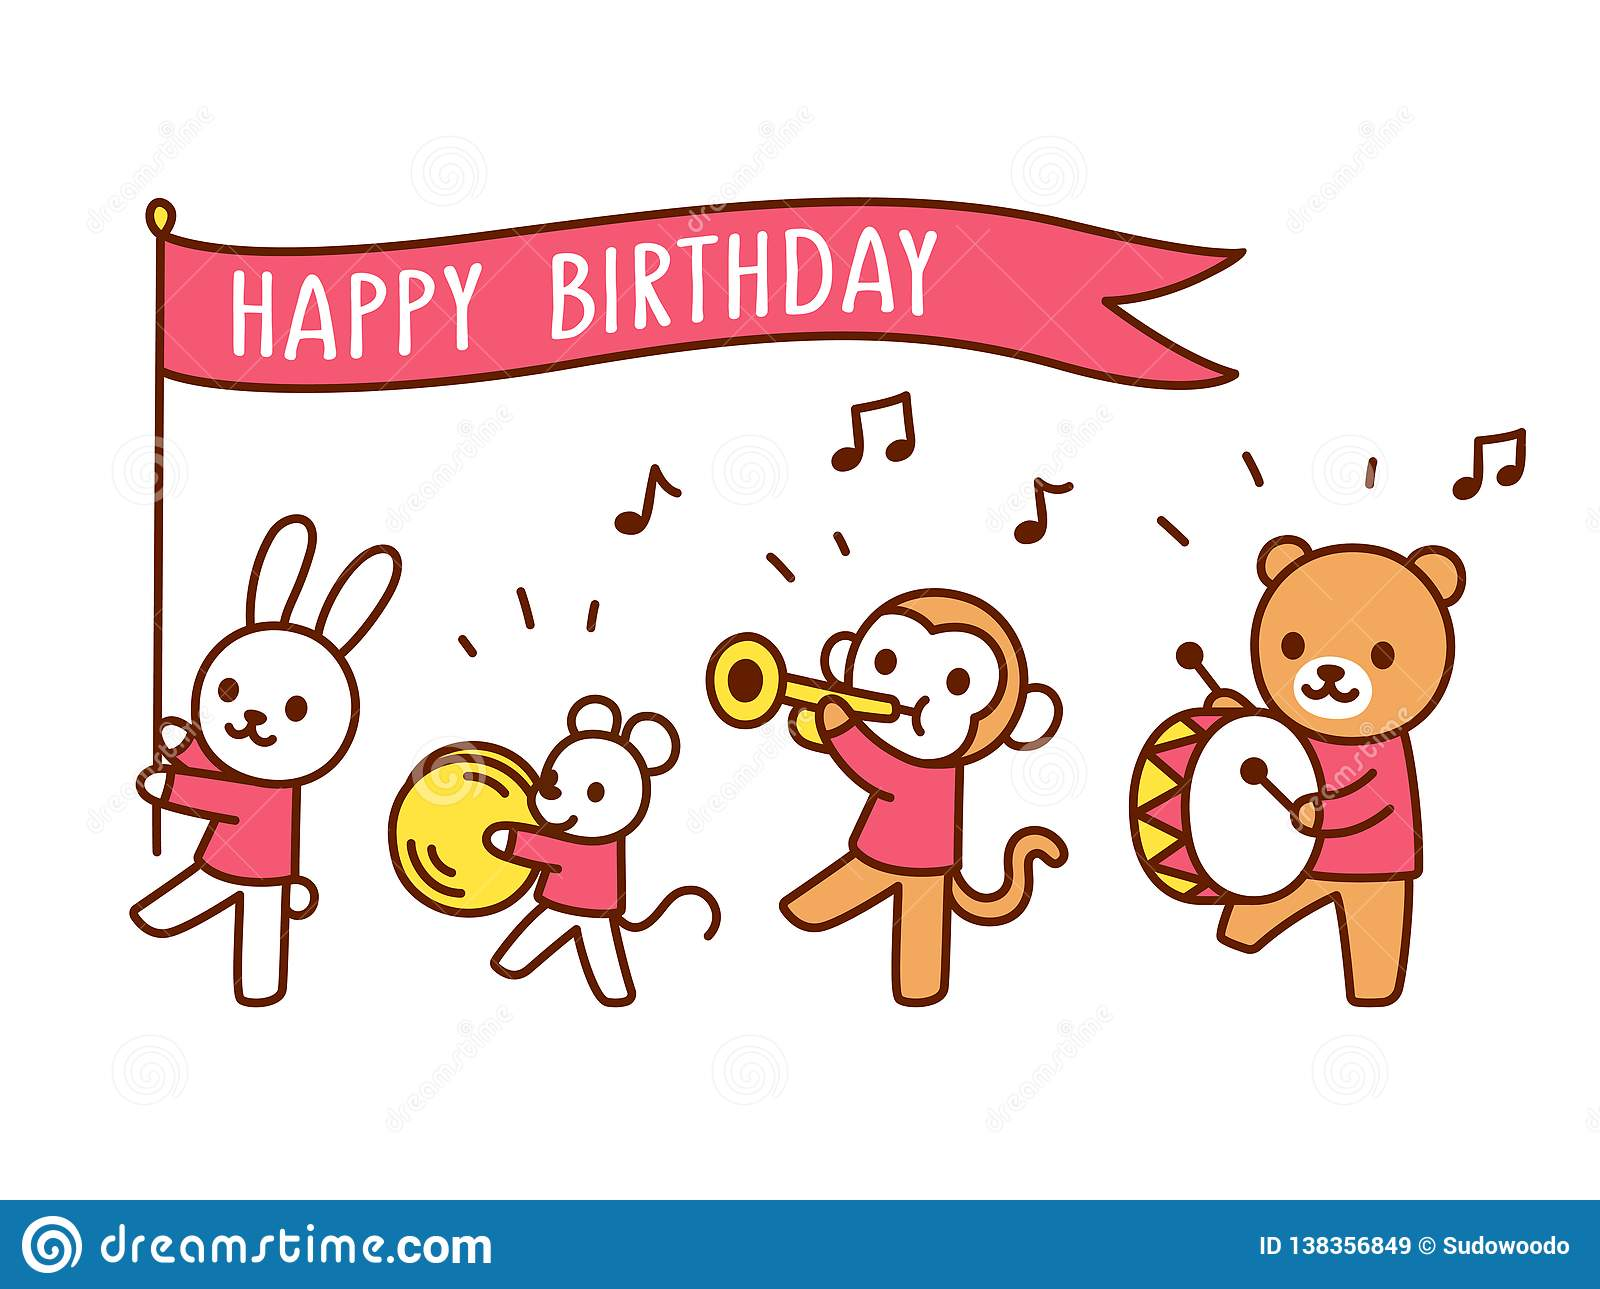 Cute Happy Birthday Greeting Card With Funny Cartoon Animals Playing Music Kawaii Marching Band Parade Drawing Vector Illustration For Children